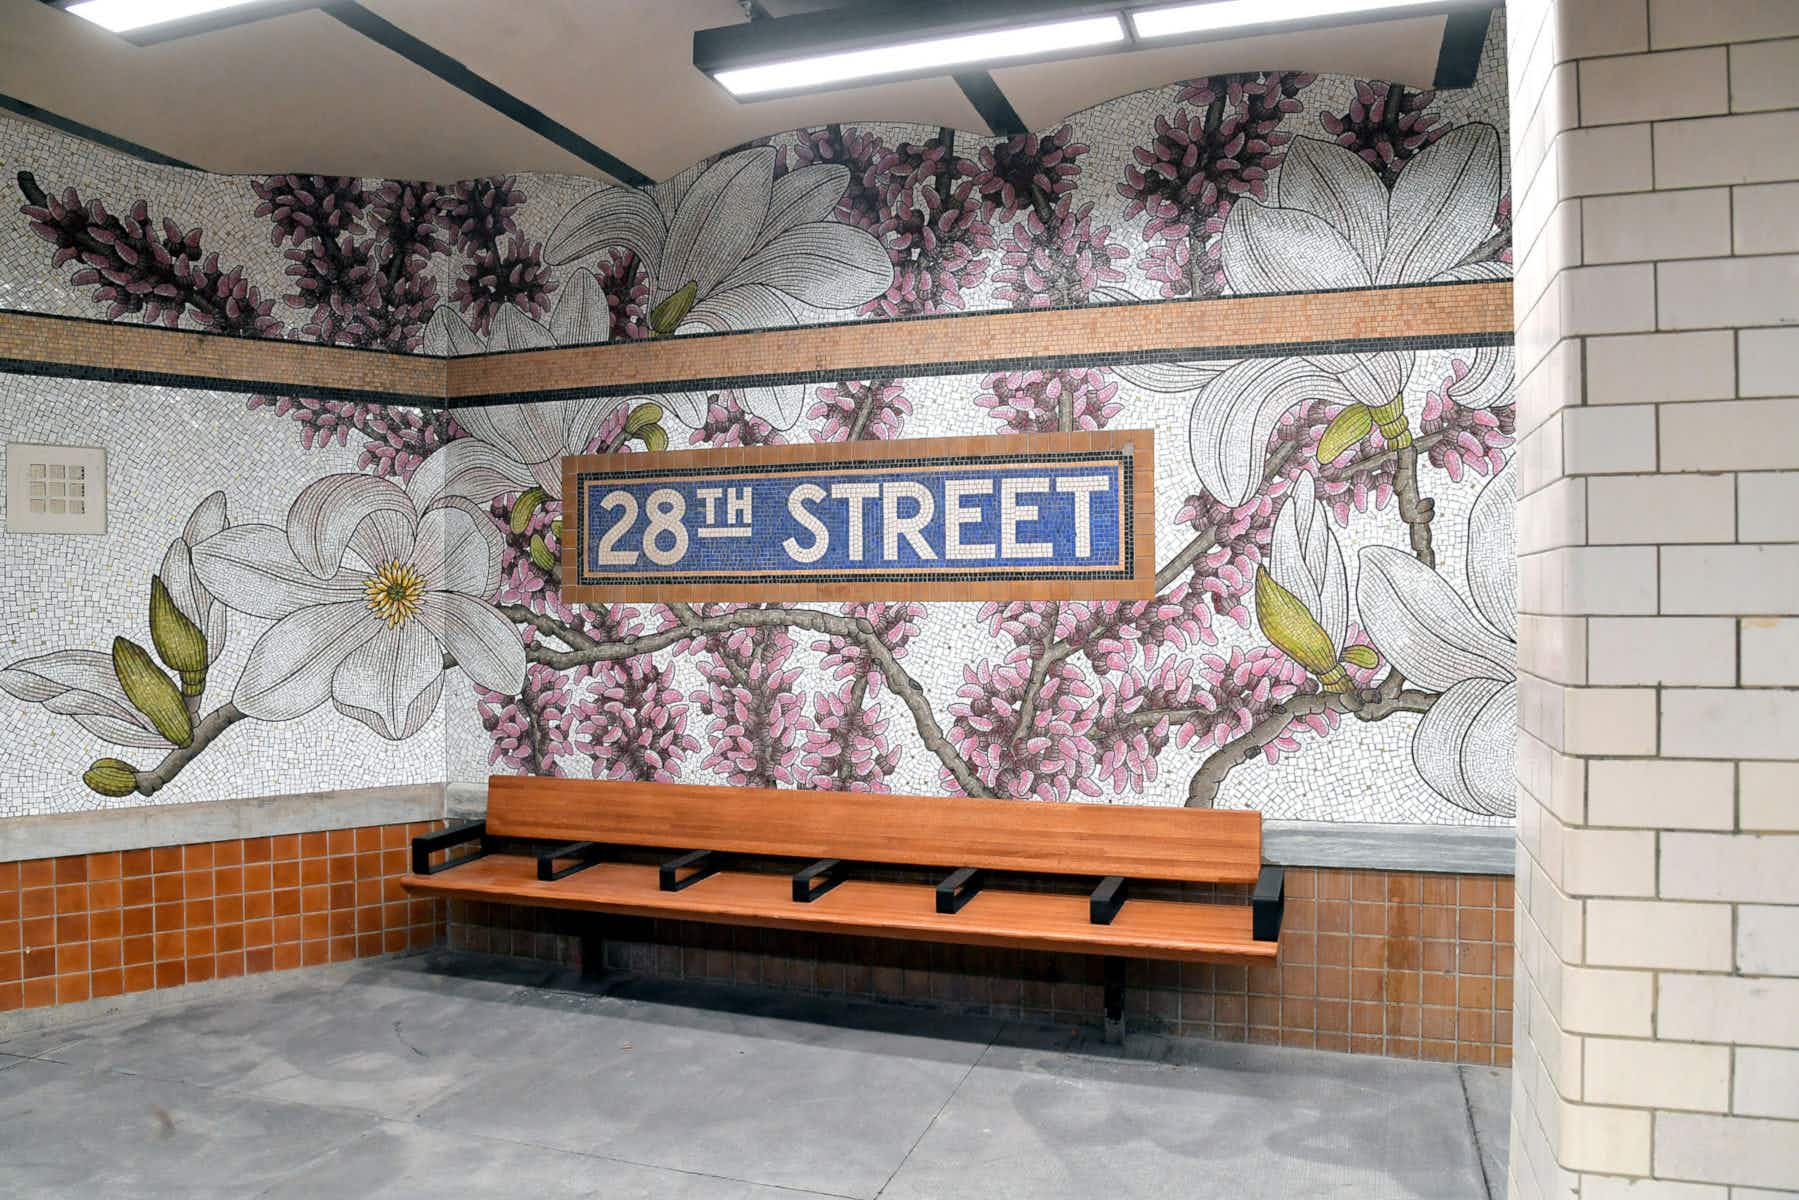 Mosaic flowers are blooming at this New York City subway station